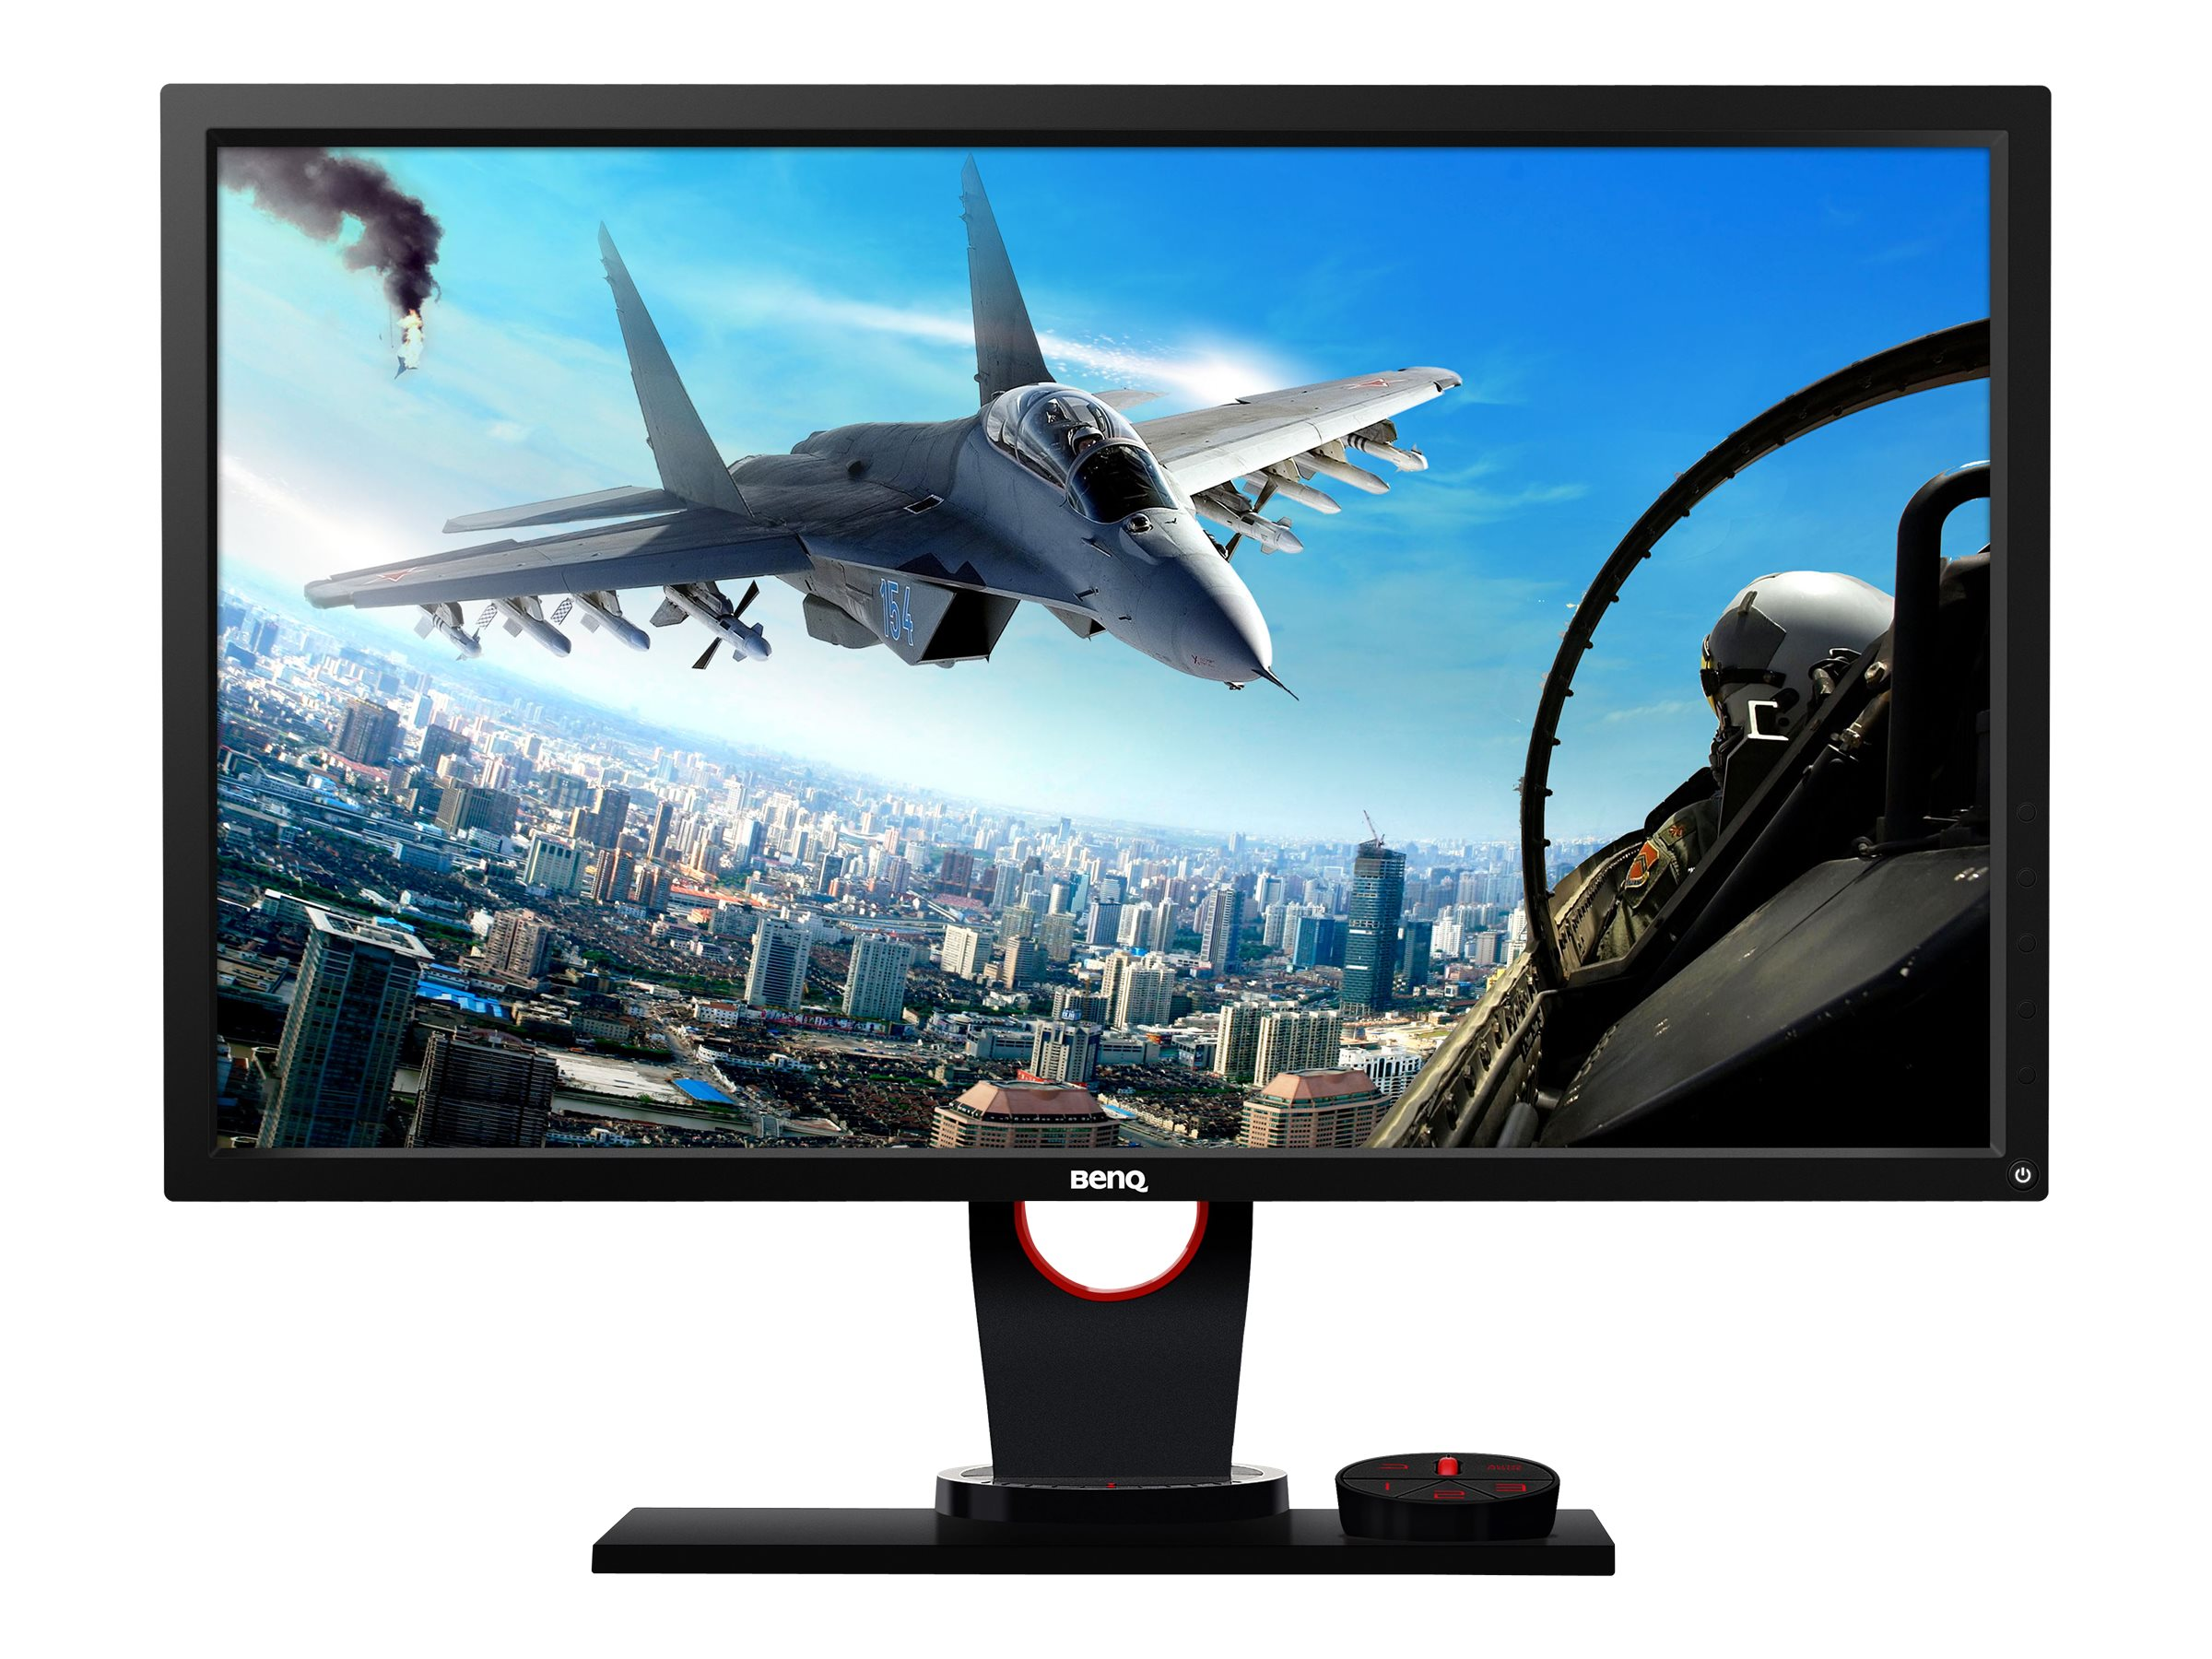 Benq 27 XL2730Z WQHD LED-LCD Gaming Monitor, Black, XL2730Z, 18587452, Monitors - LCD